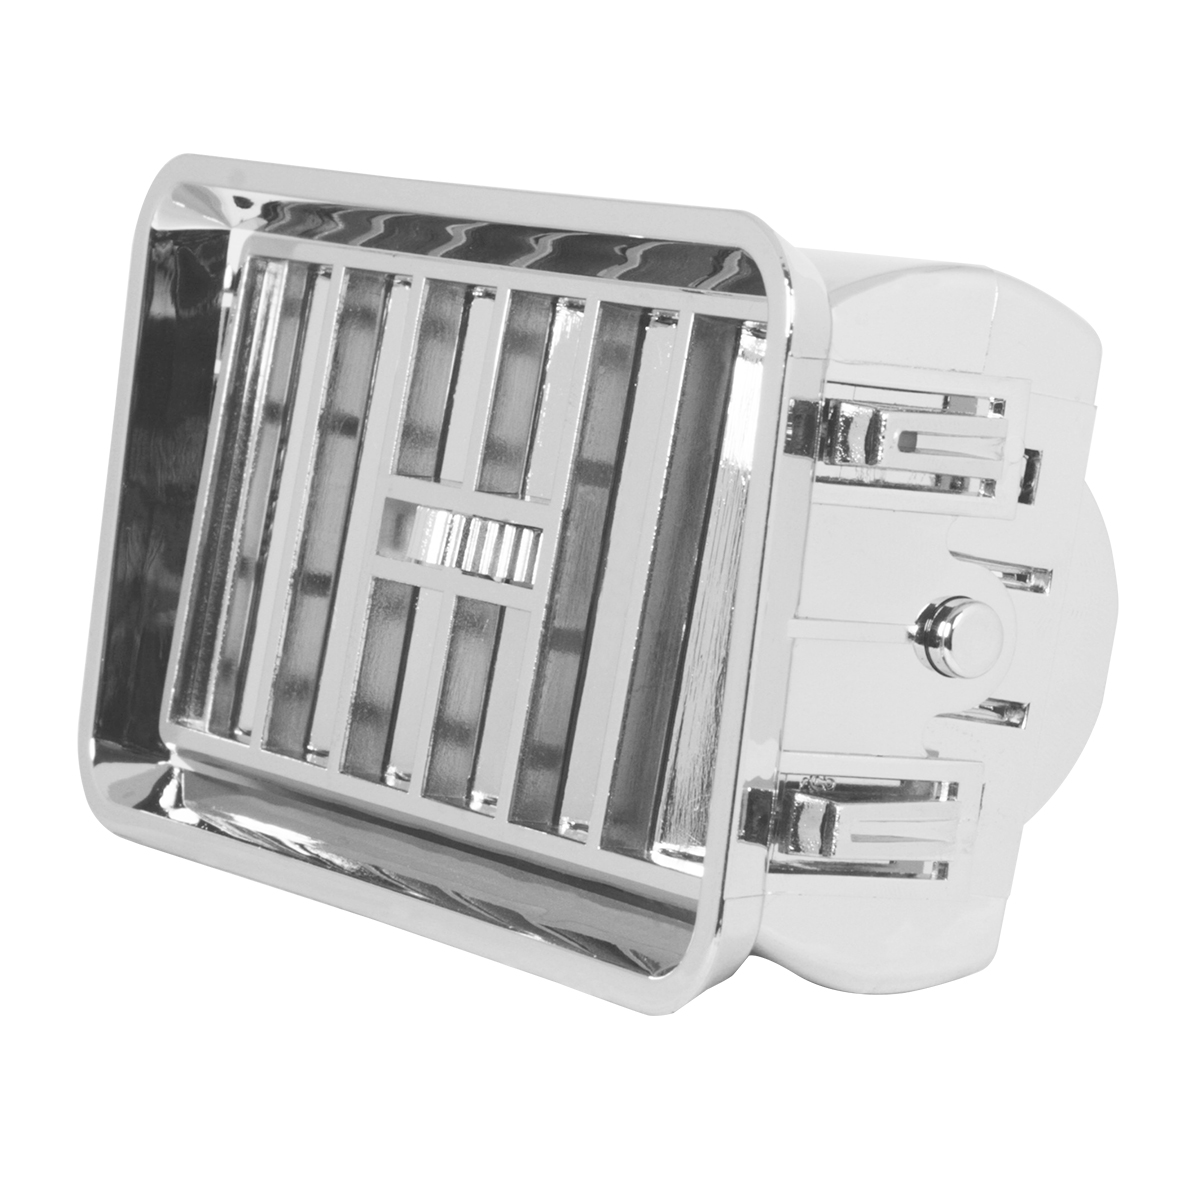 68425 A/C Vent with Adjustable Louver and Frame for Freightliner Classic/FLDs